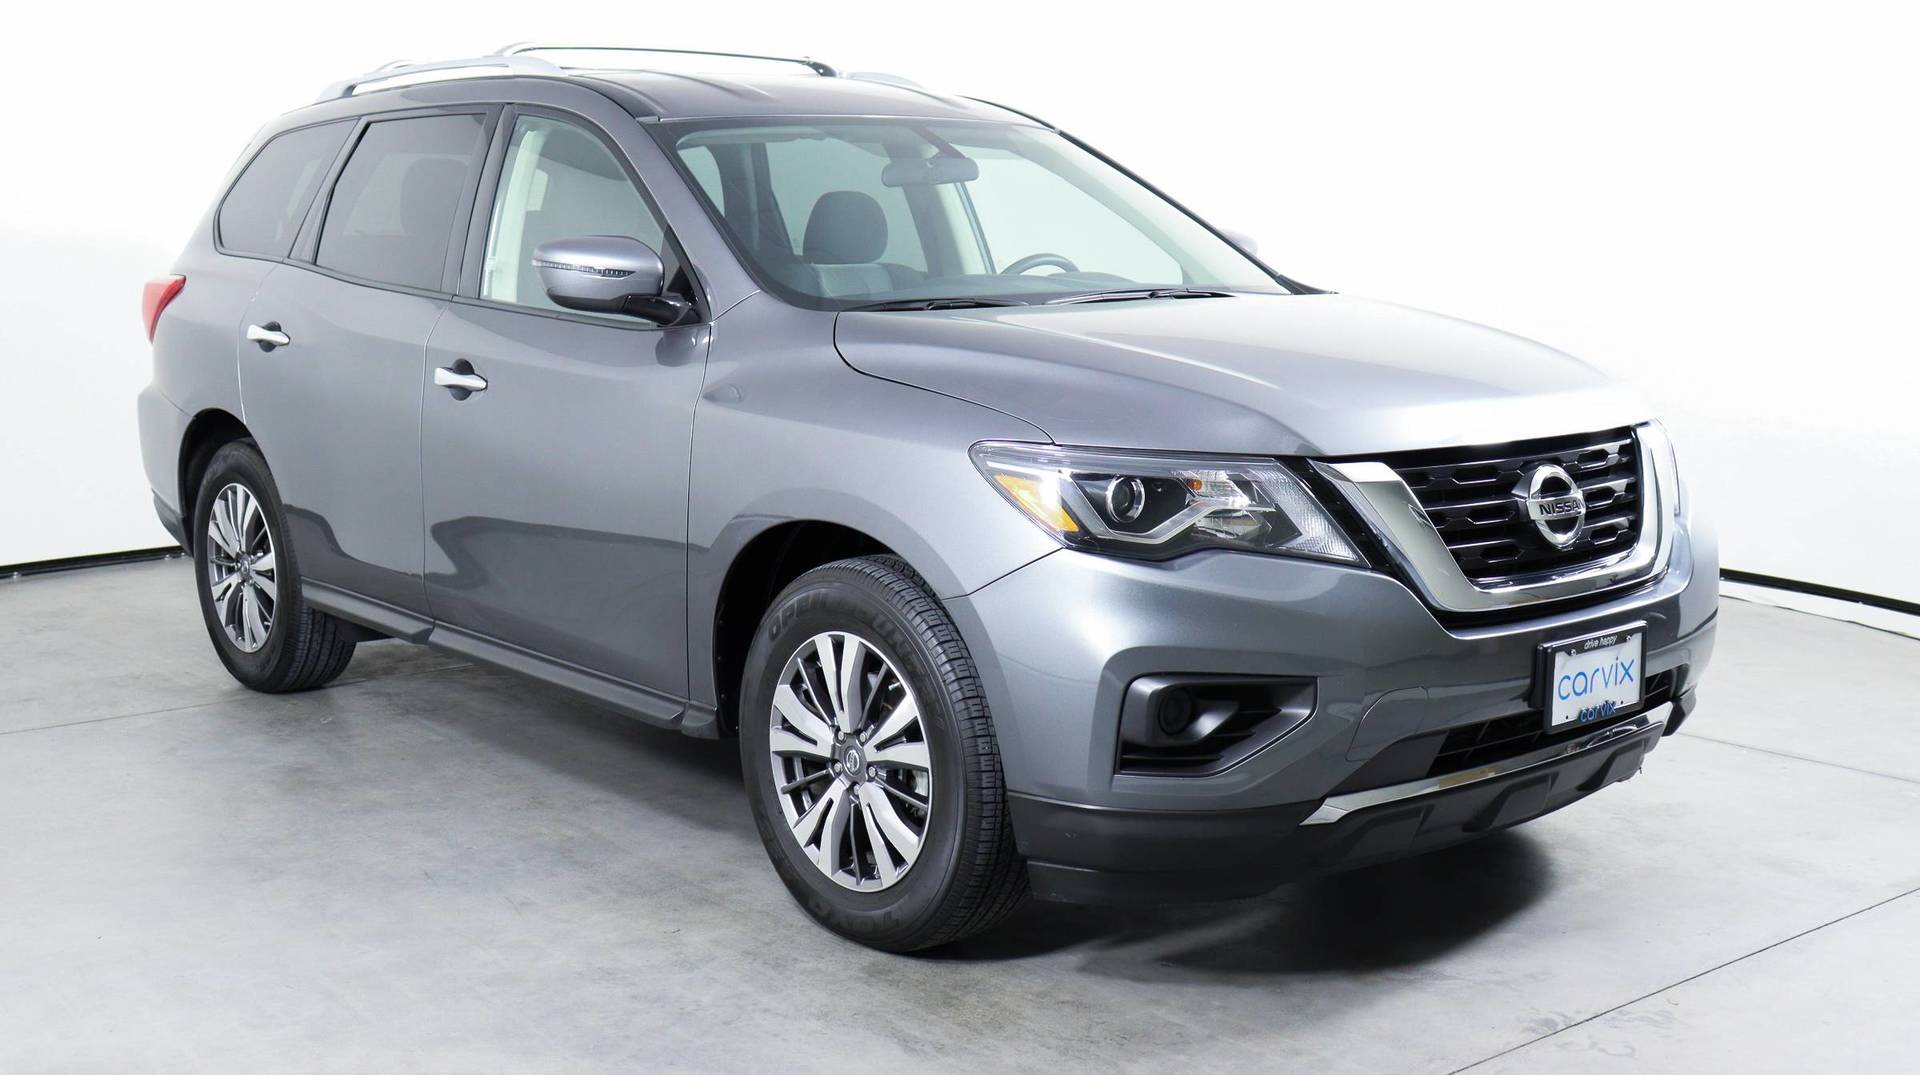 used vehicle - SUV NISSAN PATHFINDER 2019